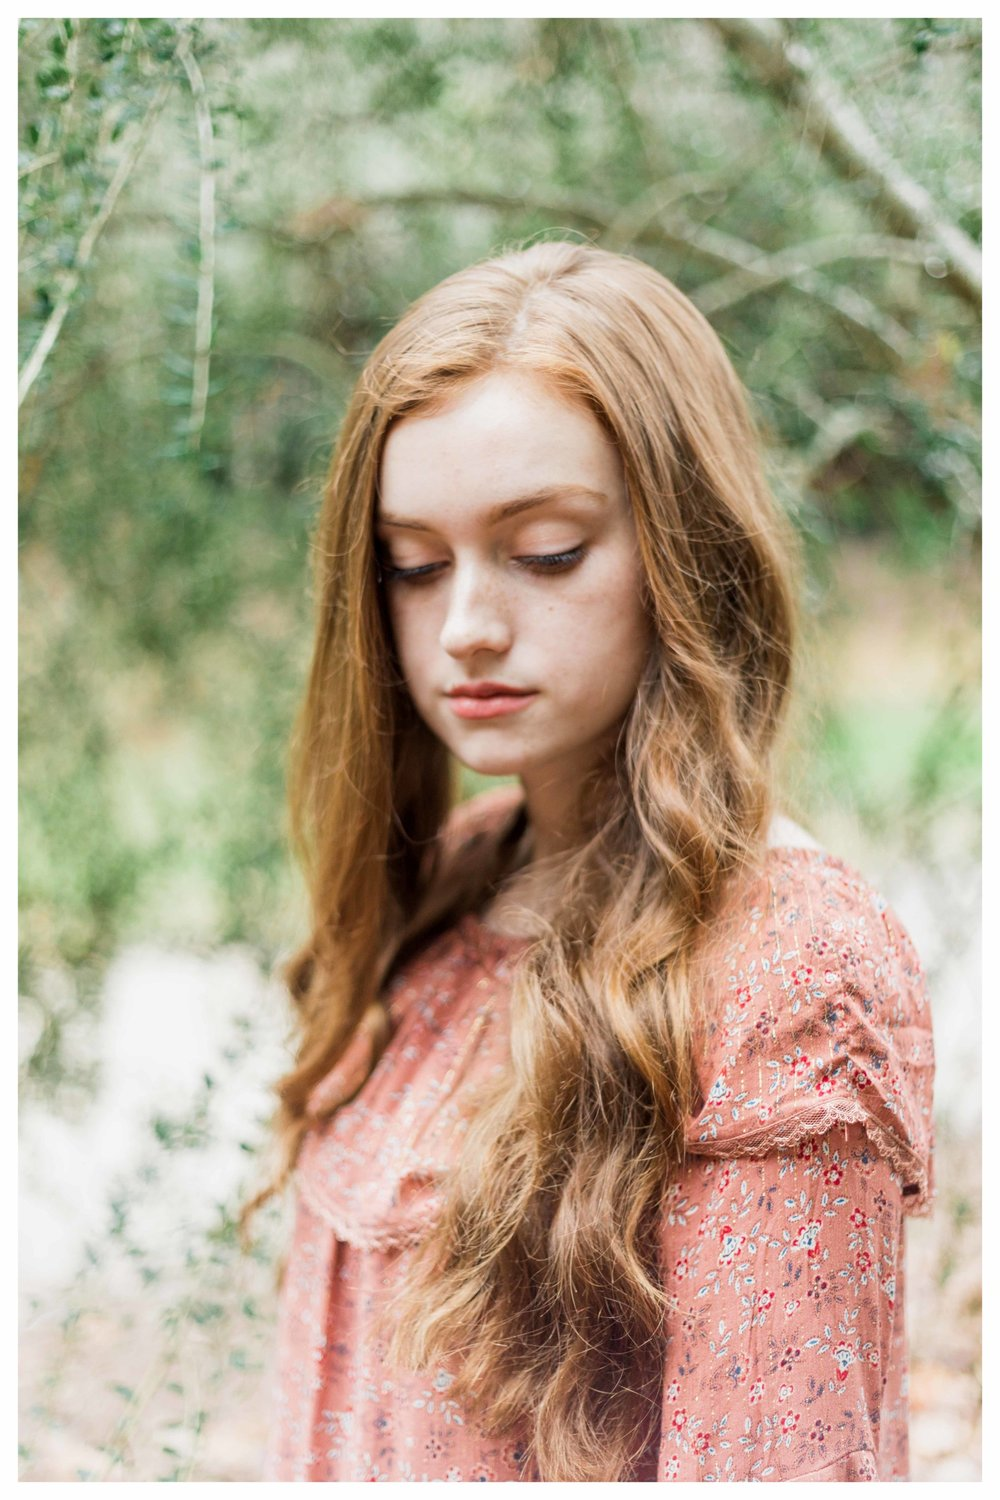 lillie_senior_2018_blog-6.jpg